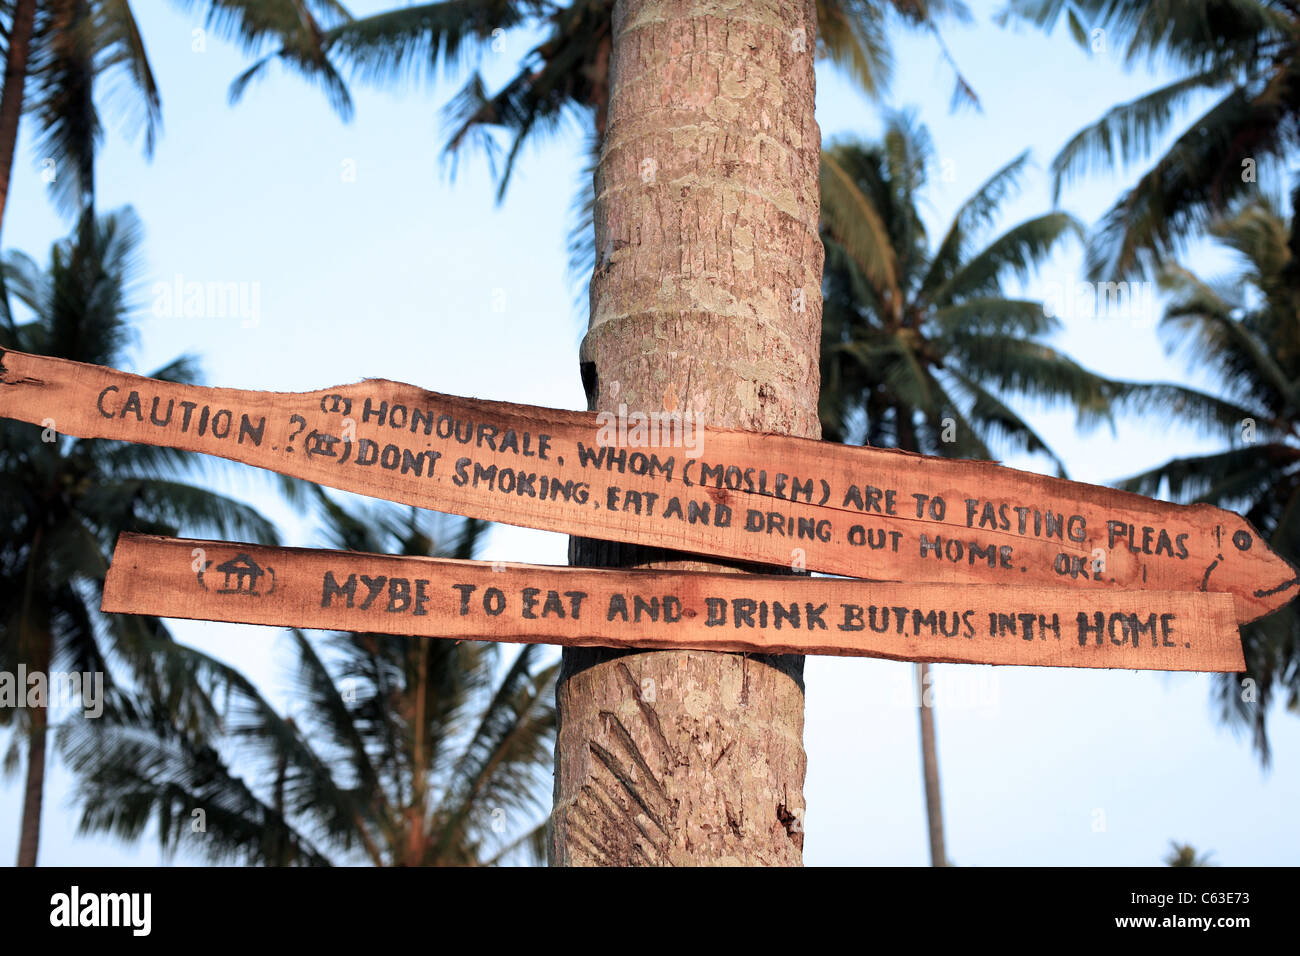 Sign at Sawarna Beach in West Java requesting respect of local Muslim customs - Stock Image